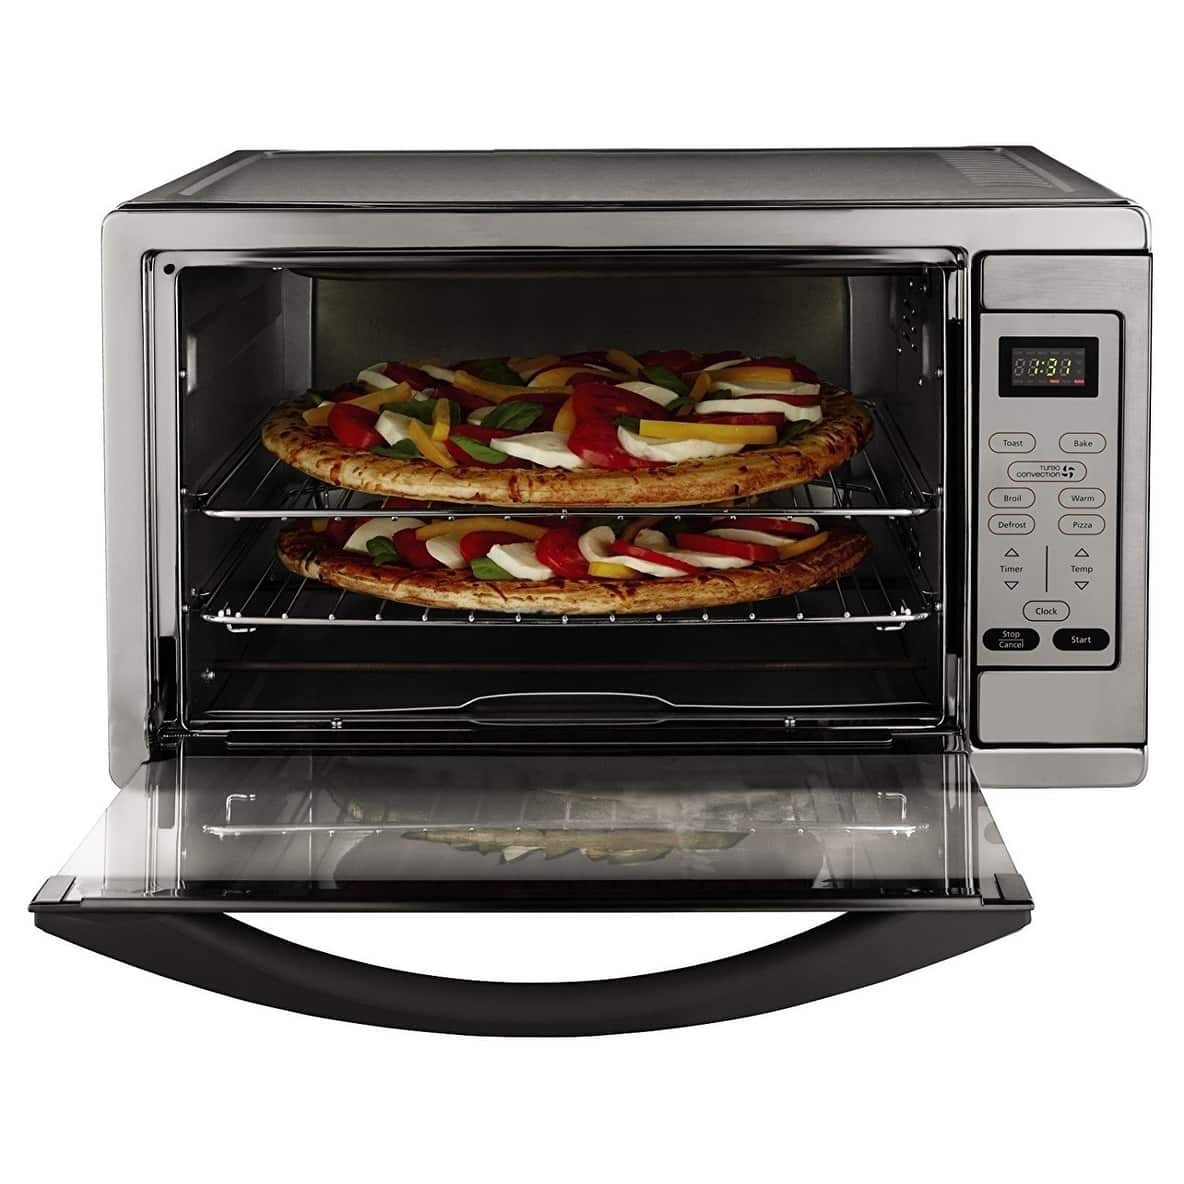 Buy Toasters Amp Toaster Ovens Online At Overstock Our